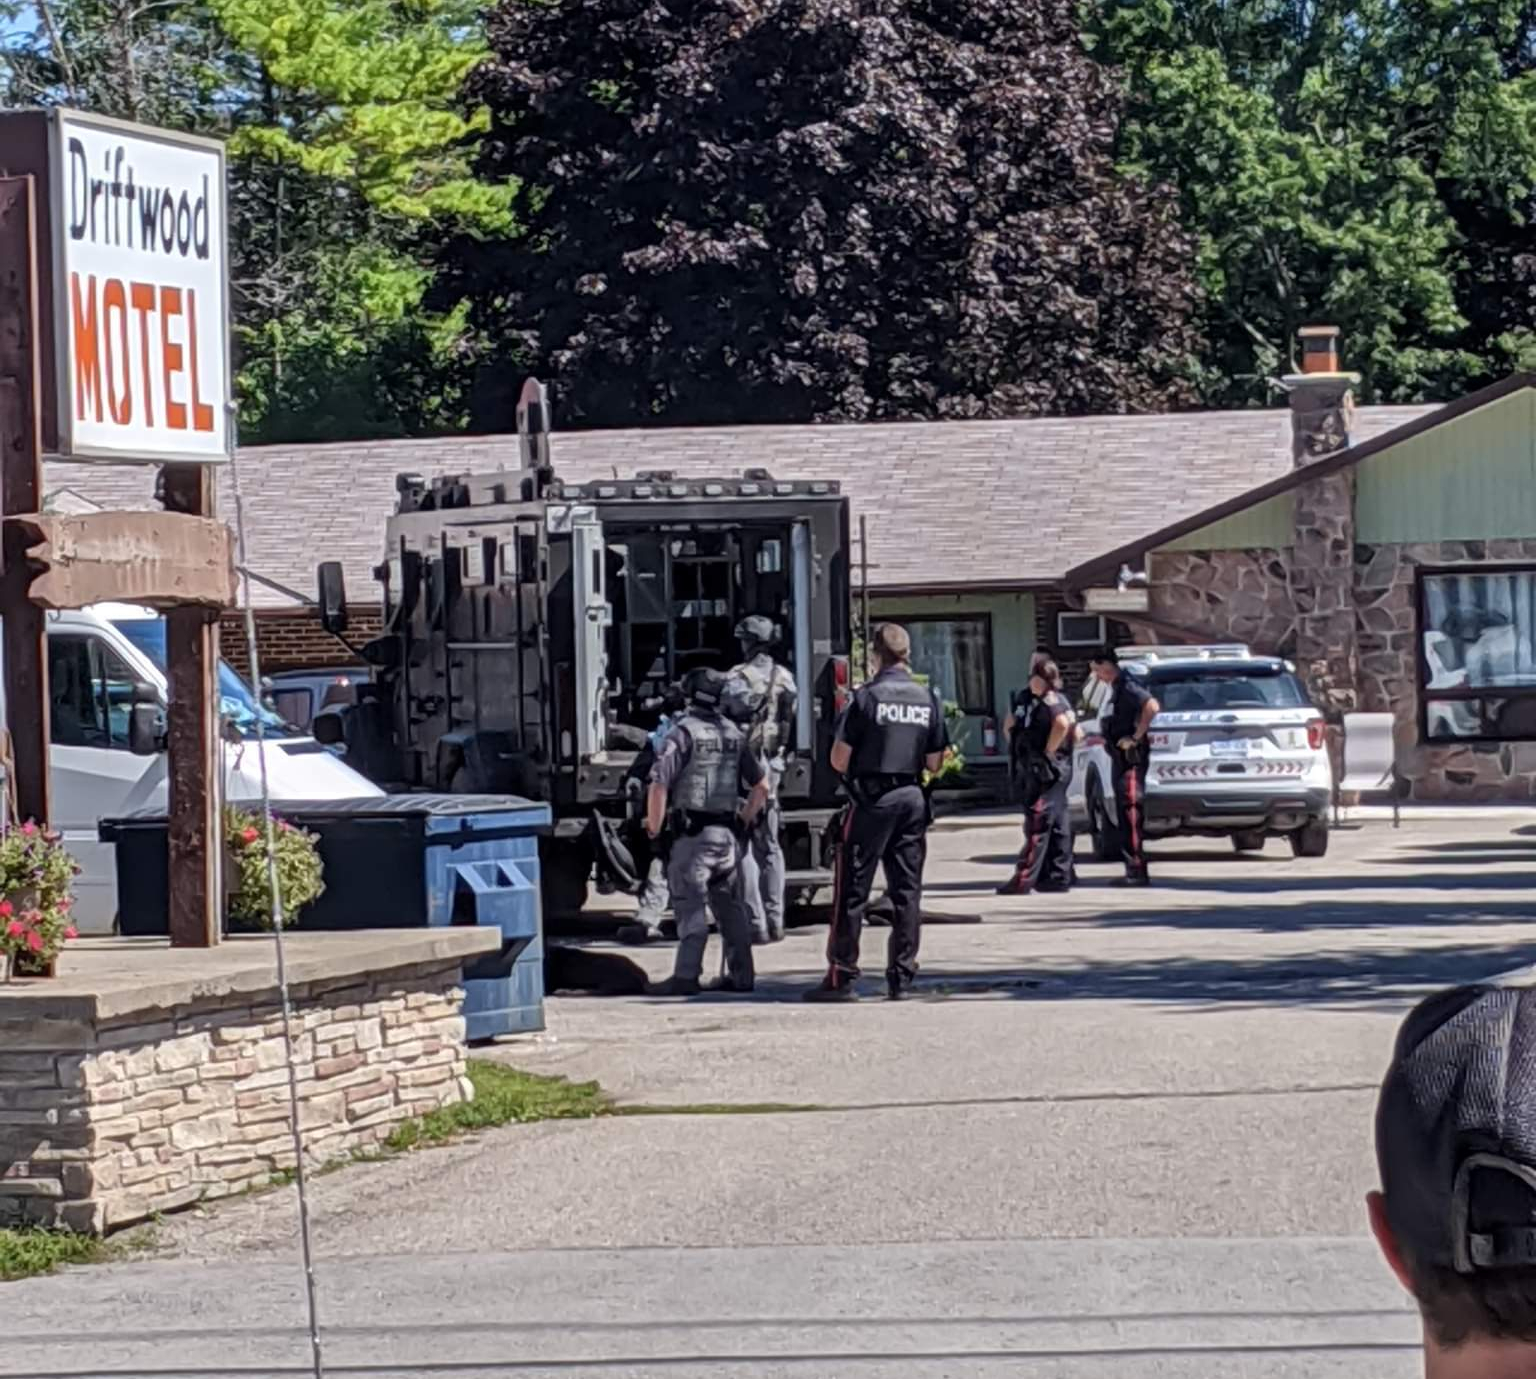 Police standoff reported in Sutton